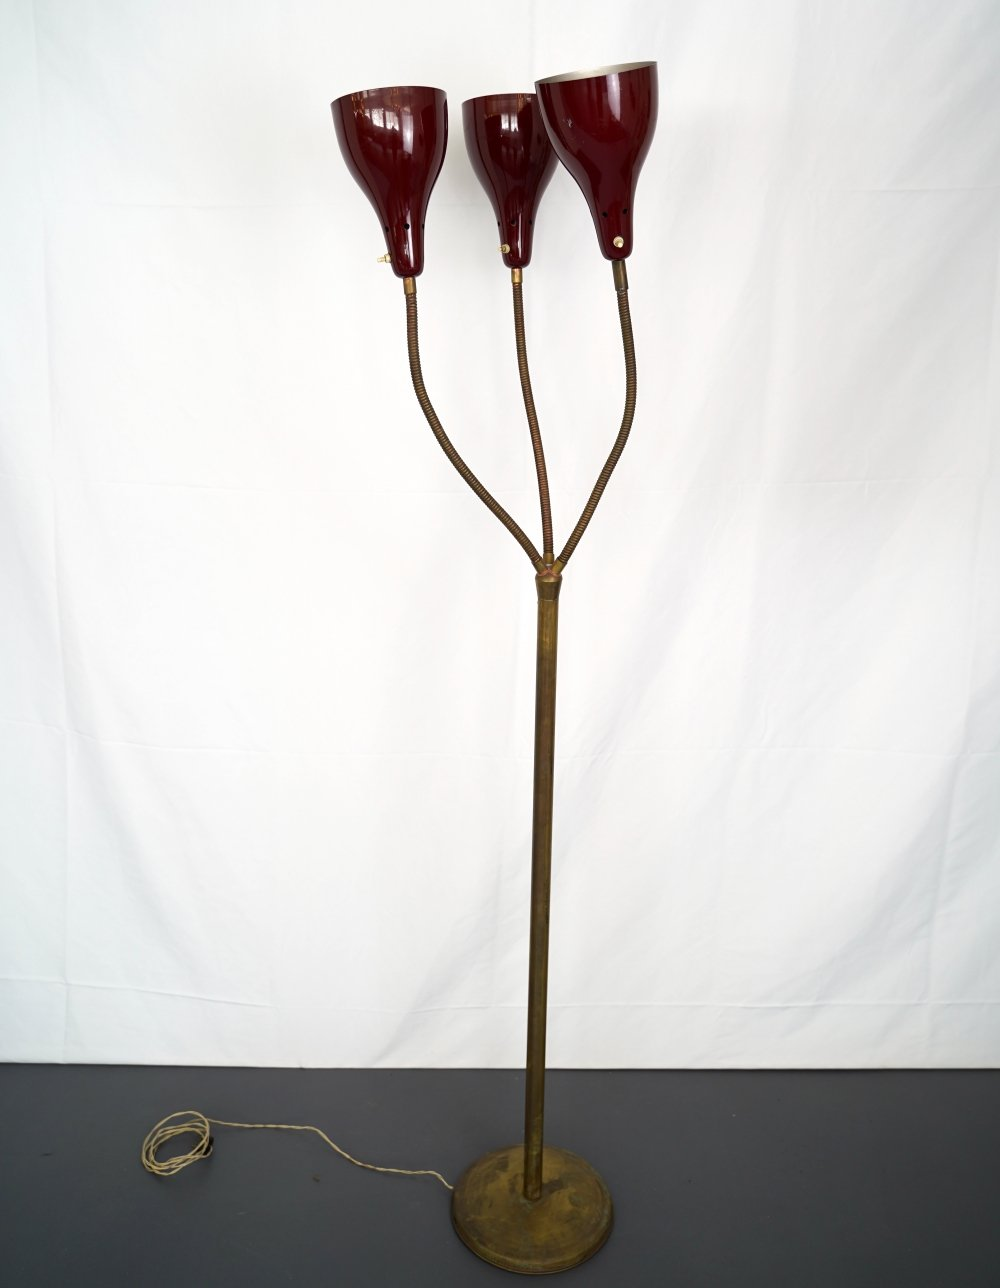 Vintage Italian brass & lacquer floor lamp with 3 flexible arms, 1950s